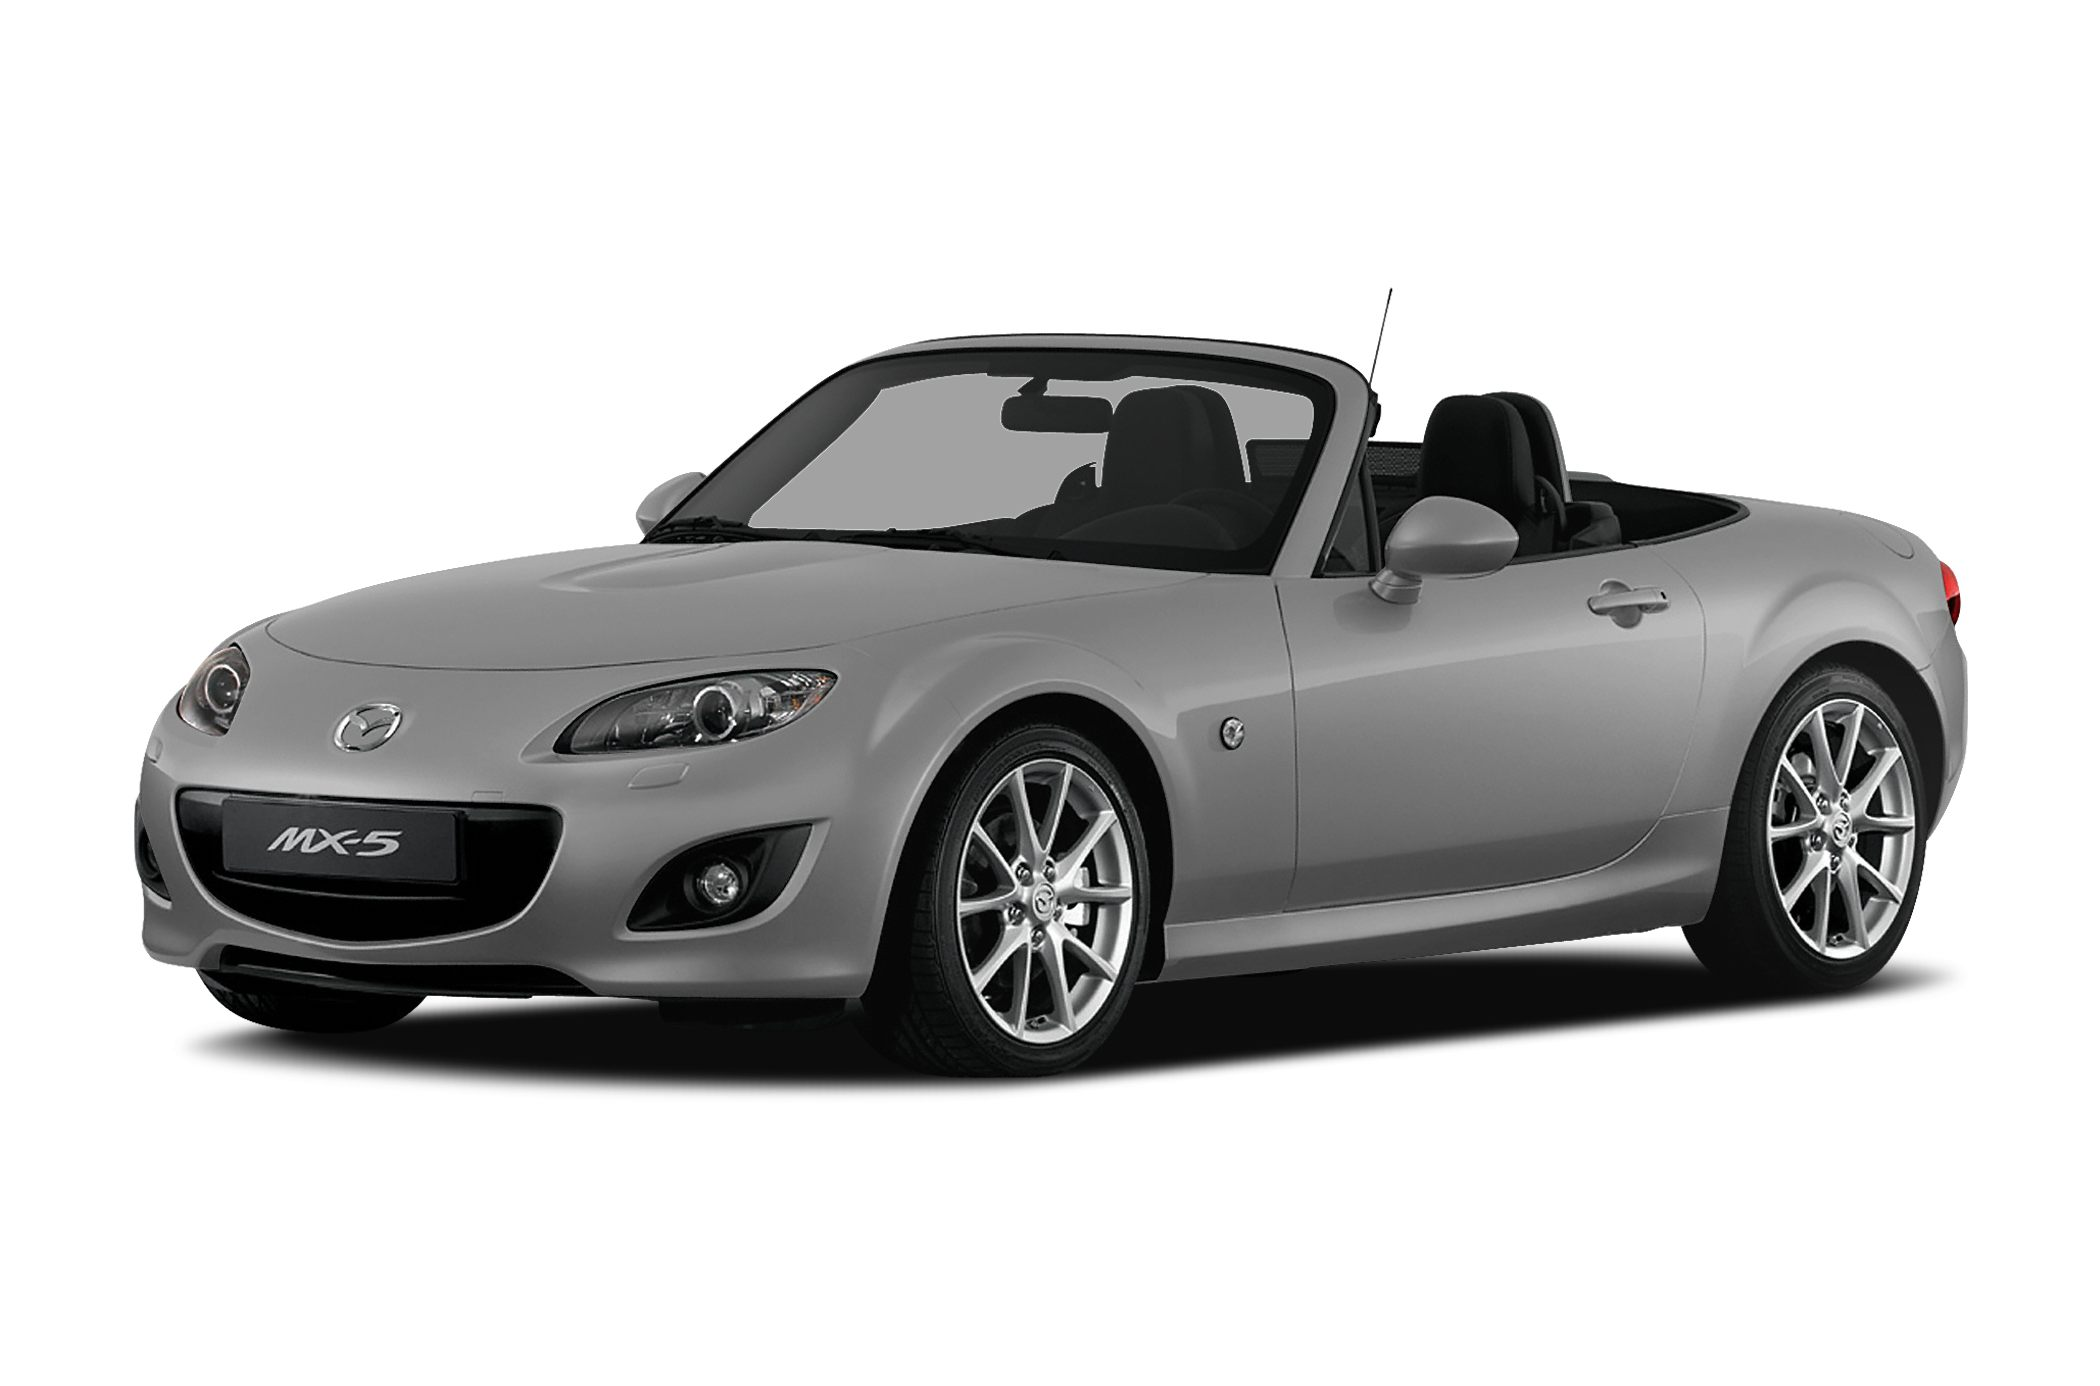 2010 Mazda Miata MX-5 Sport Convertible for sale in Pulaski for $16,944 with 23,805 miles.